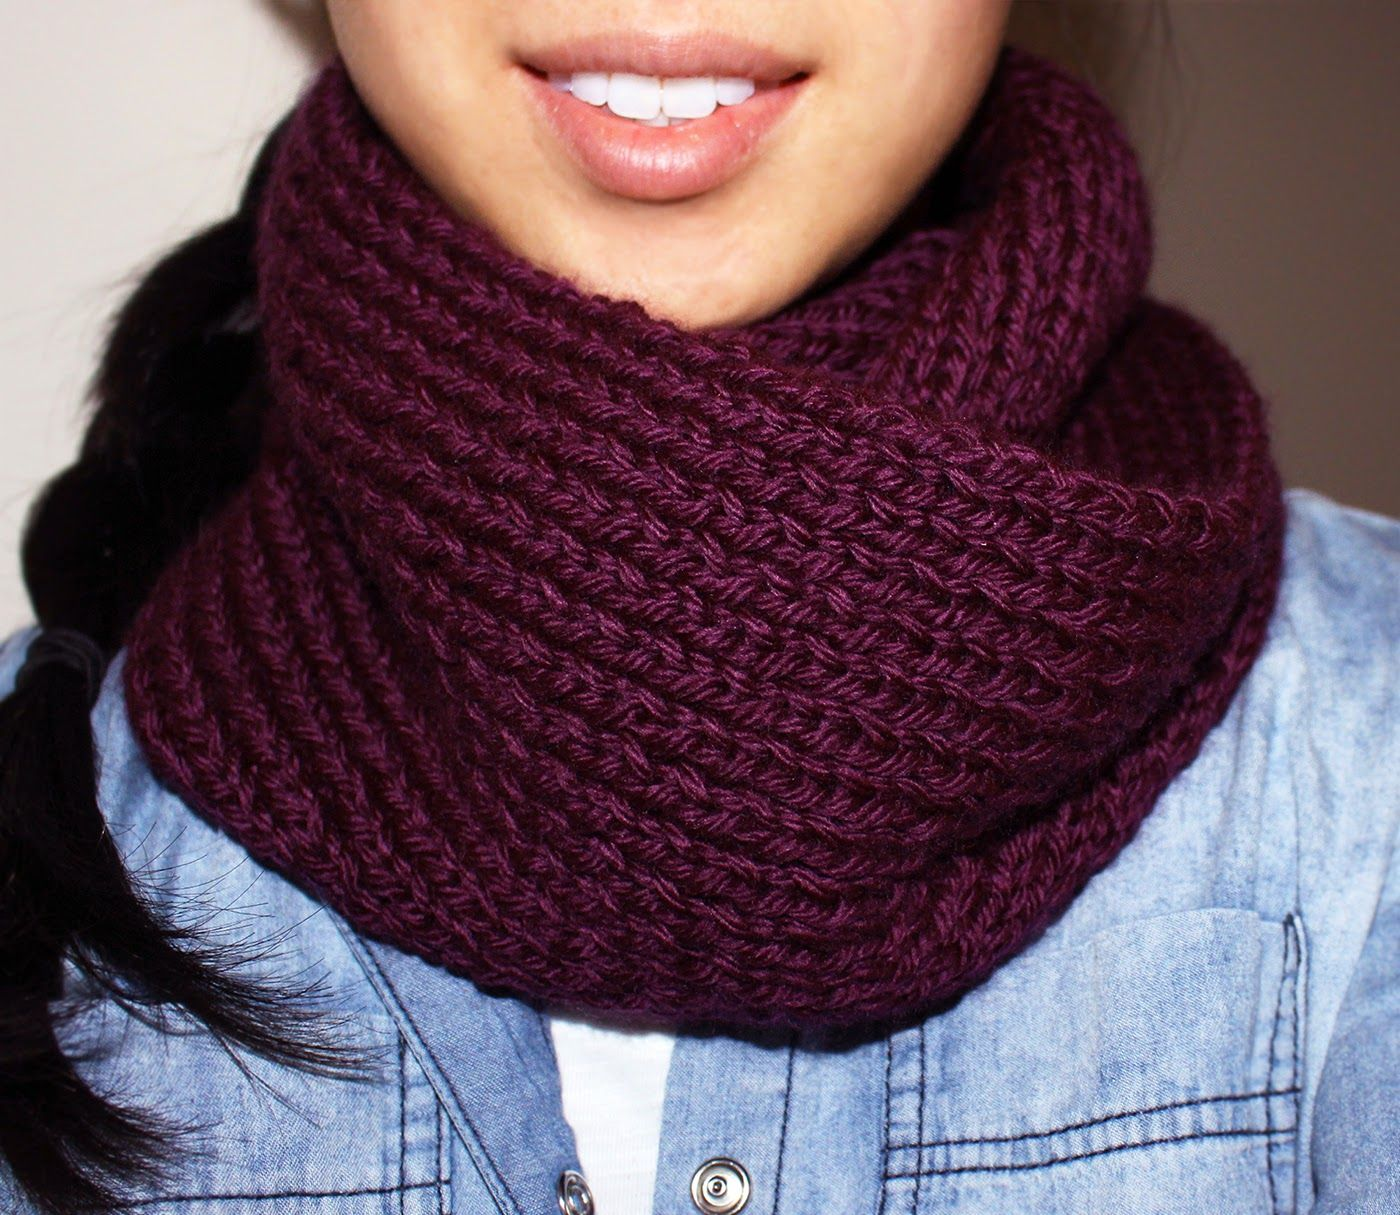 Knitting A Scarf With Circular Needles : Purllin acai infinity circle scarf free knitting pattern